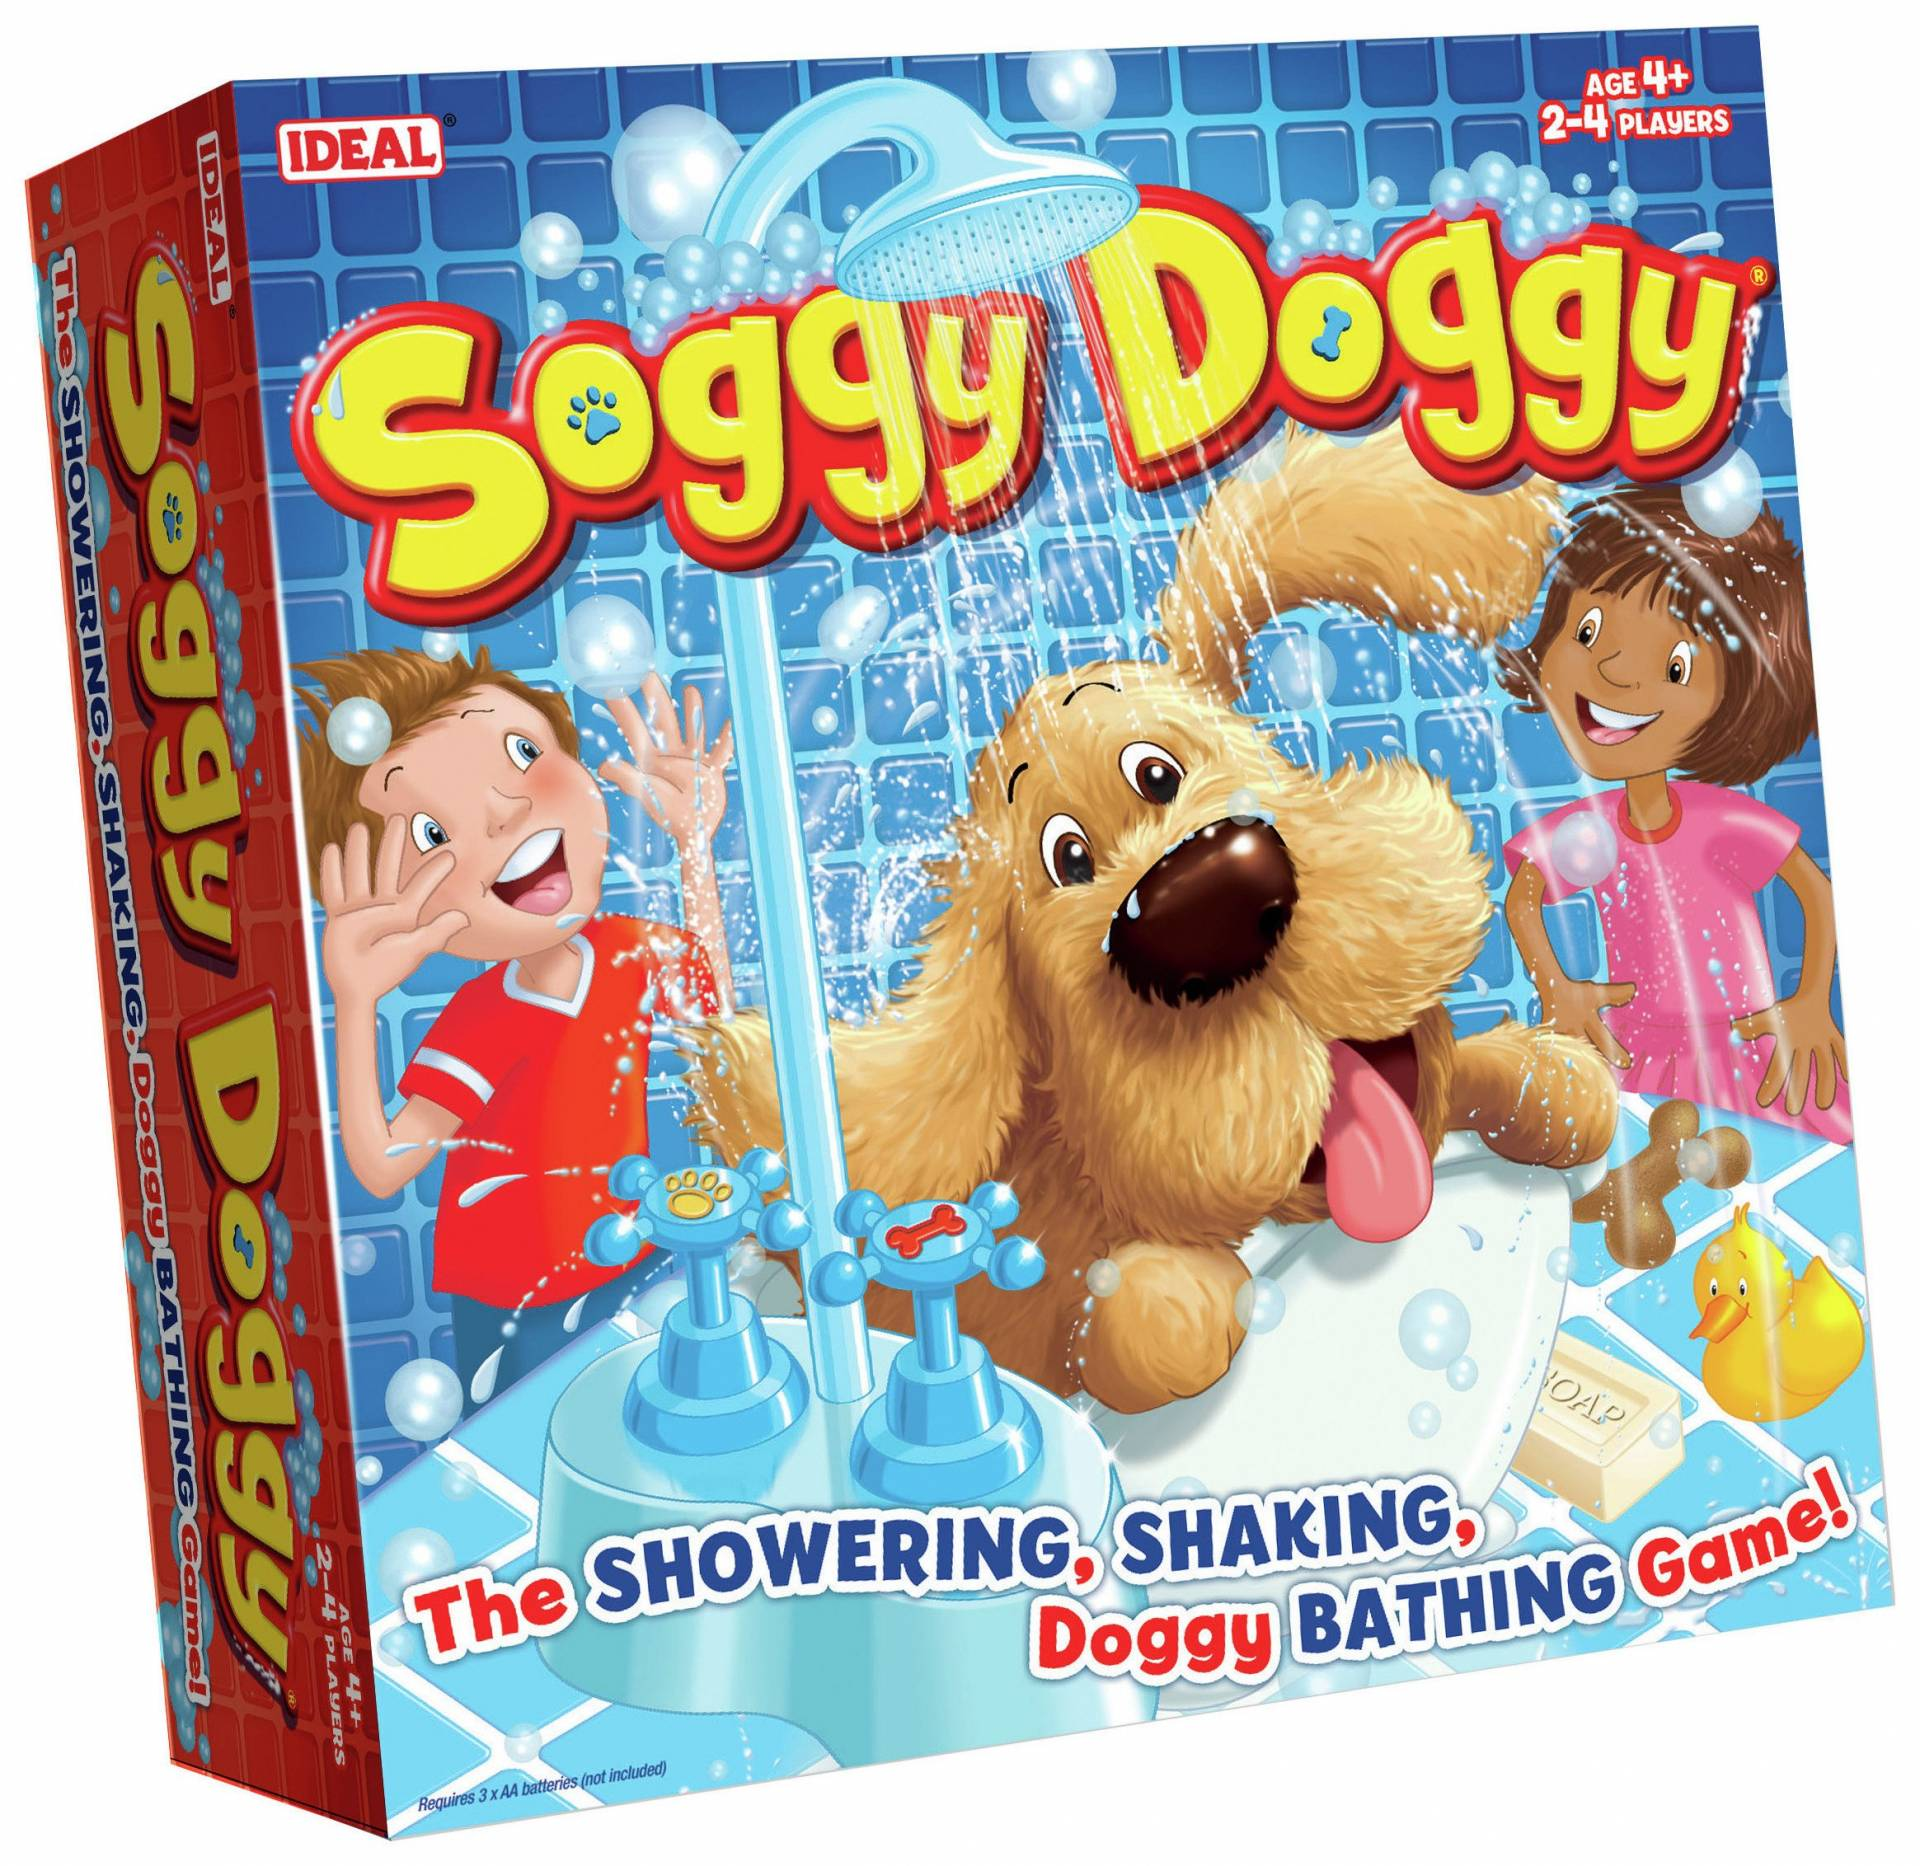 Soggy Doggy - Game. from Ideal